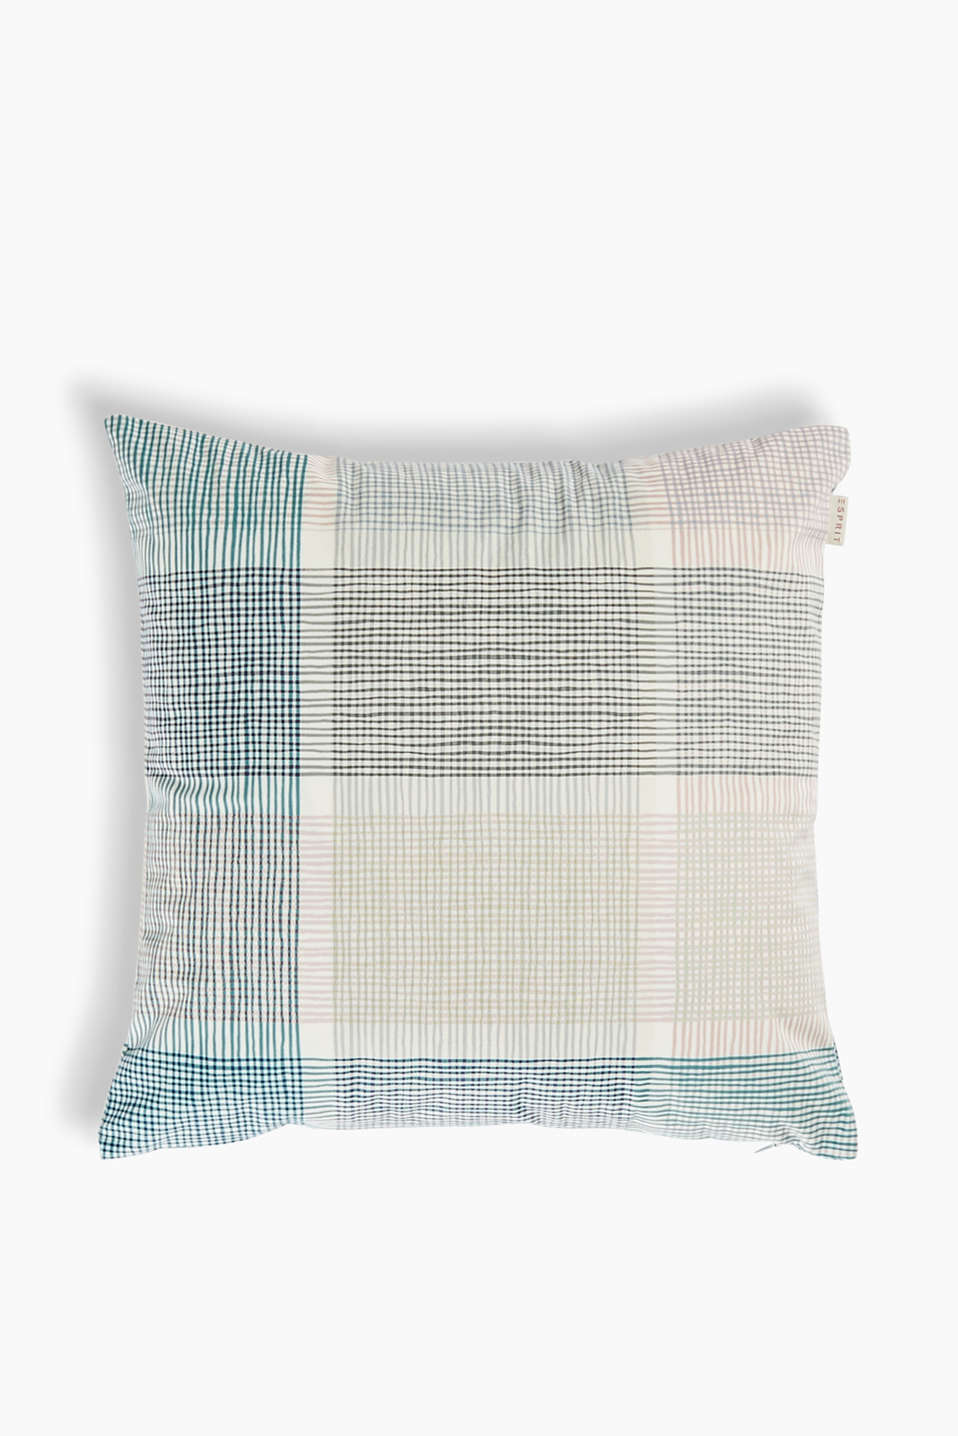 Cushion cover with a lattice pattern in cool colours, made of high-quality micro velvet